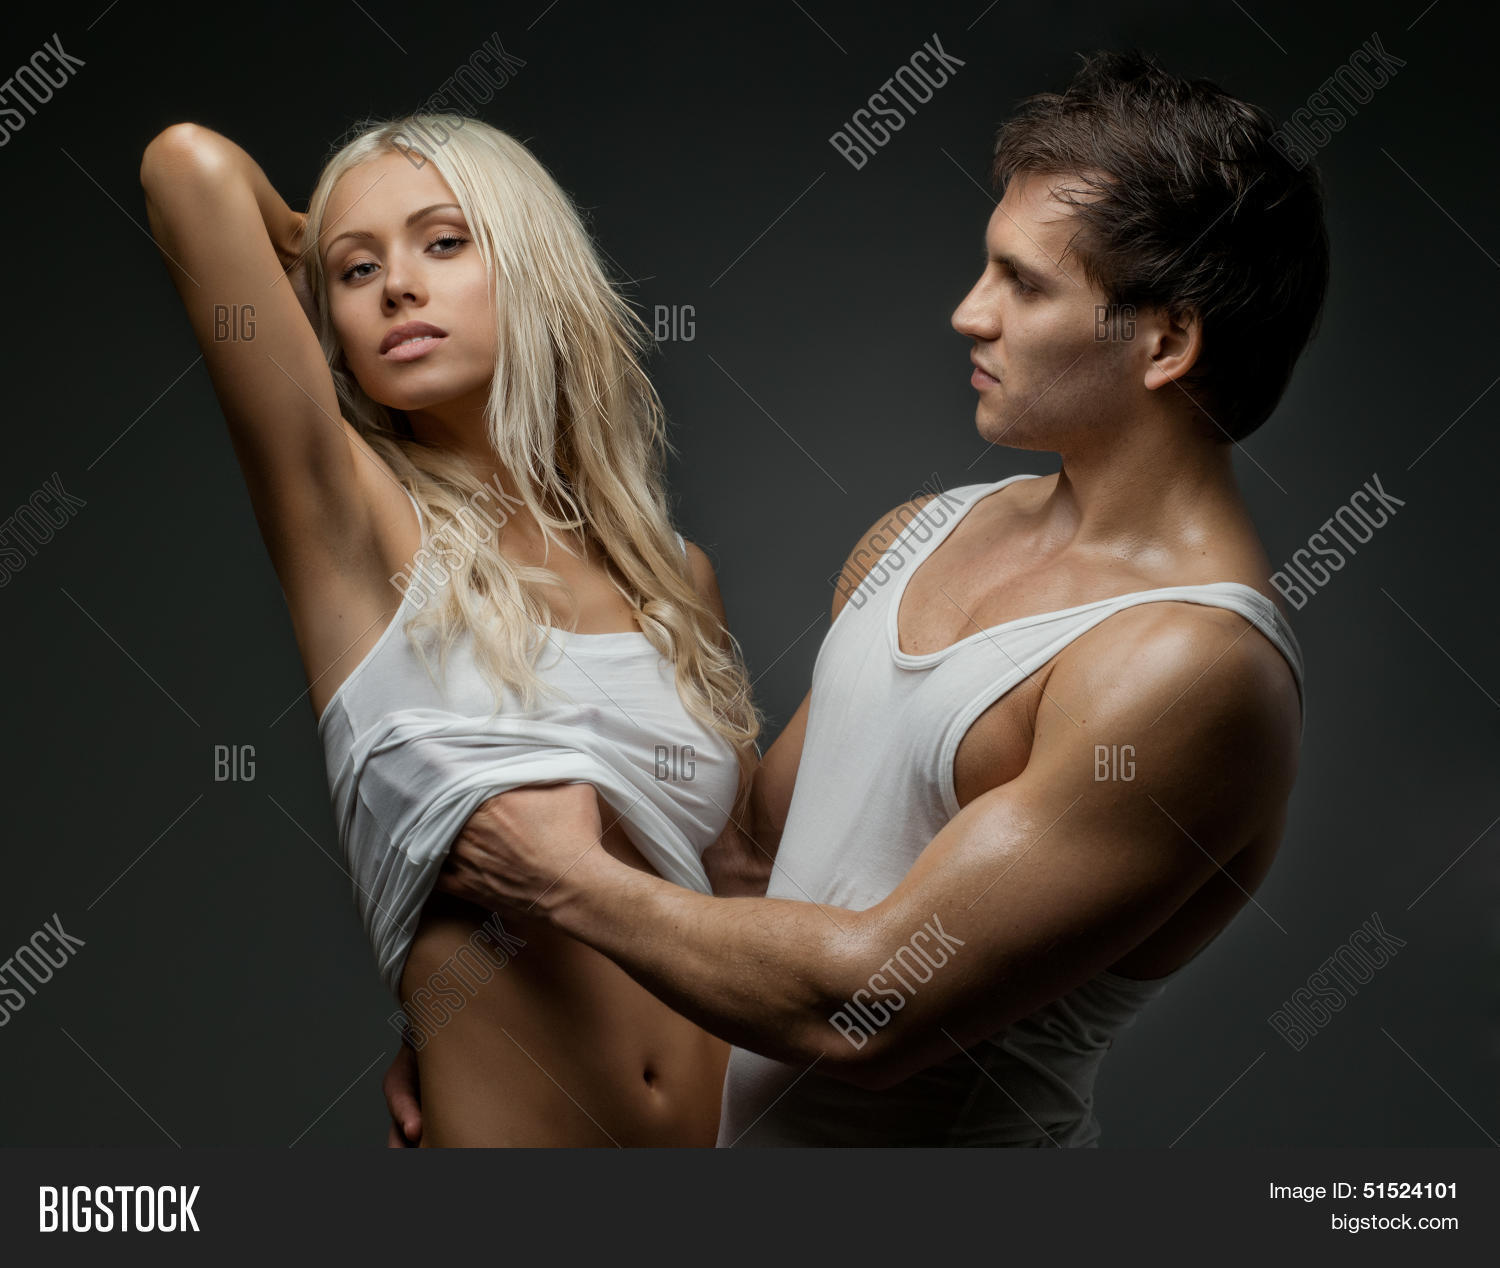 Pretty Wallpaper For Girls Bedroom Sexy Couple Image Amp Photo Free Trial Bigstock